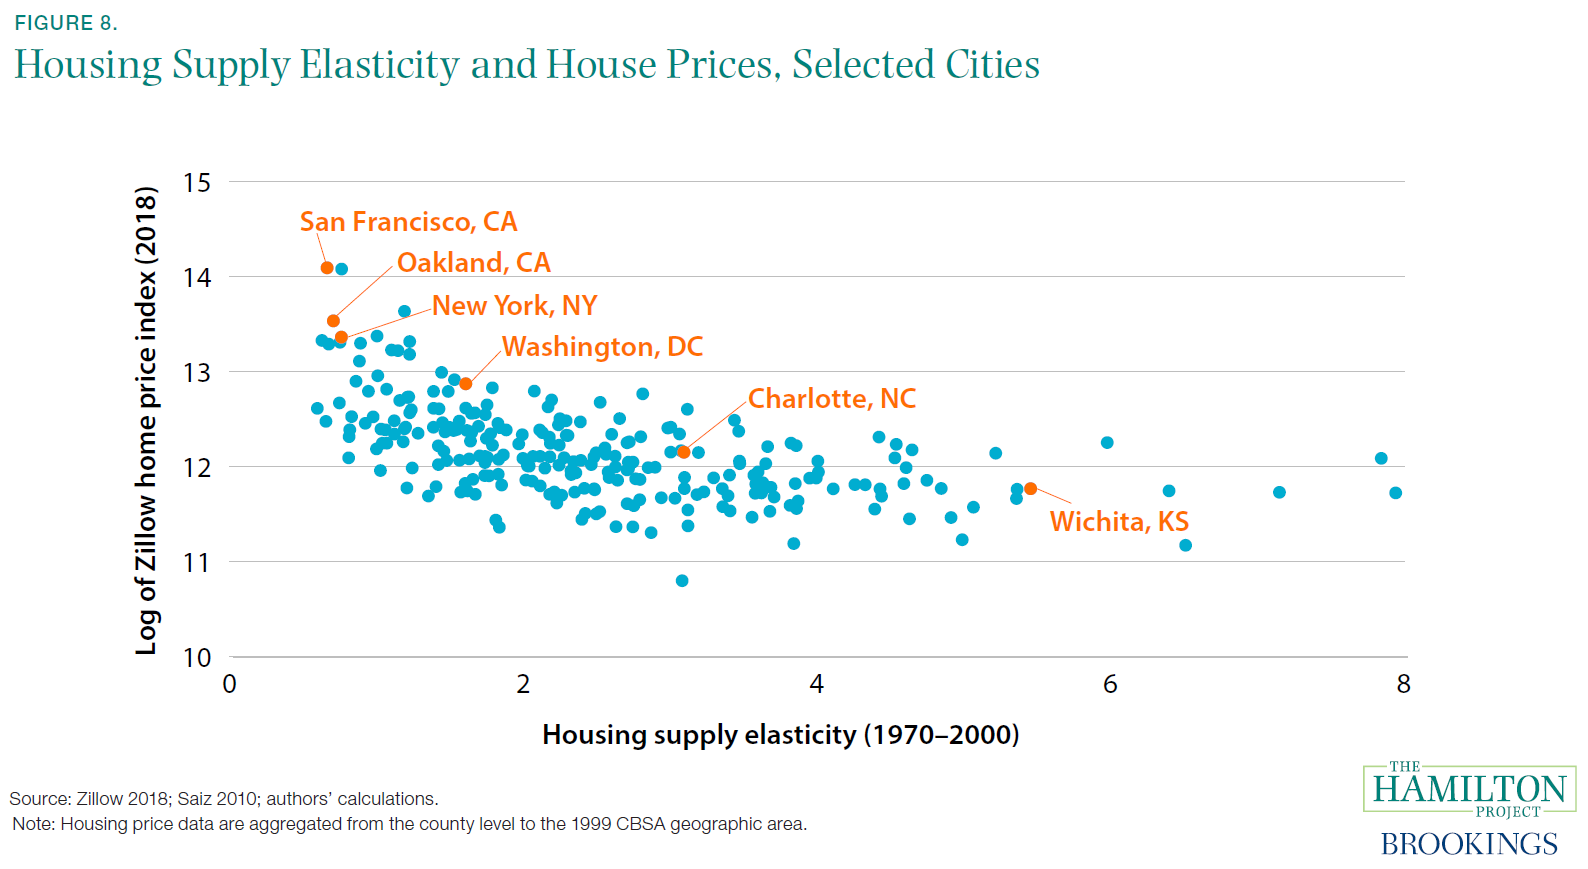 Housing Supply Elasticity and House Prices, Selected Cities